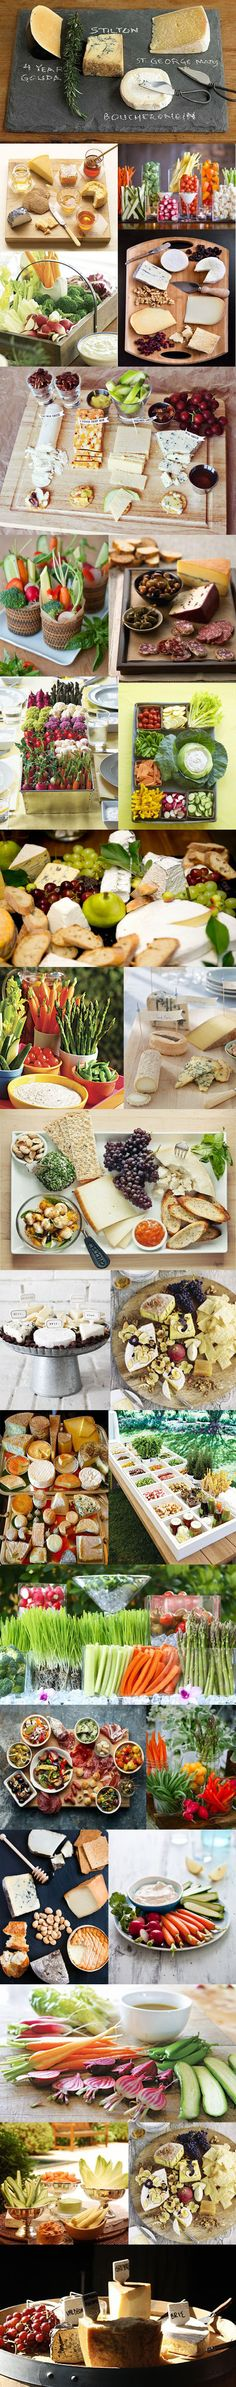 39 Ideas Appetizers For Party Display Wine Tasting For 2019 – Snacks 2020 Wine And Cheese Party, Wine Tasting Party, Wine Parties, Wine Cheese, Snacks Für Party, Appetizers For Party, Appetizer Recipes, Party Drinks, Appetizer Ideas